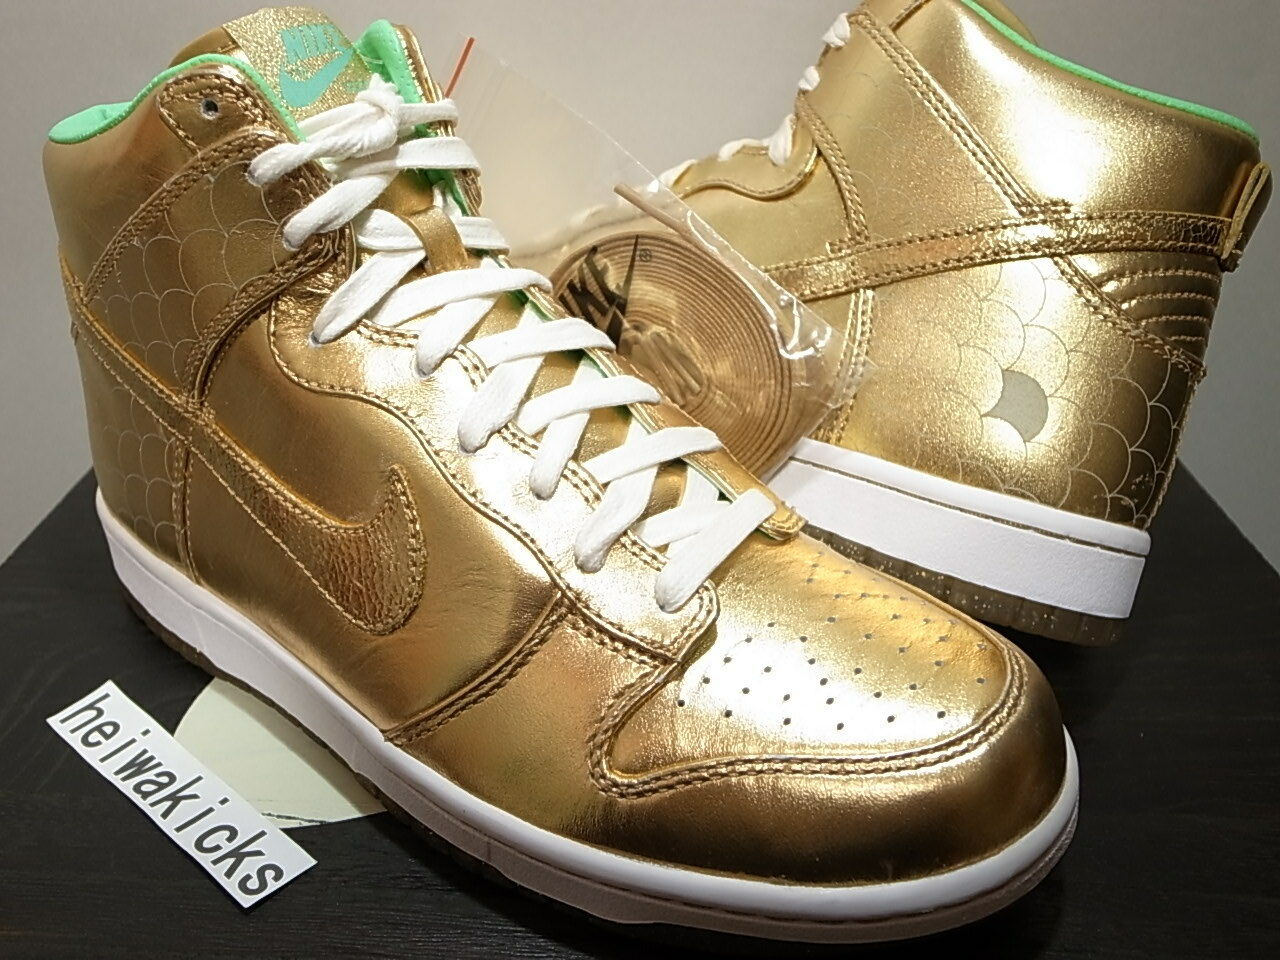 2008 NIKE DUNK HIGH CITY PREMIUM NAGOYA DOLPHIN JAPAN CITY HIGH ATTACK 323955-771 Taille 7.5 0e841c